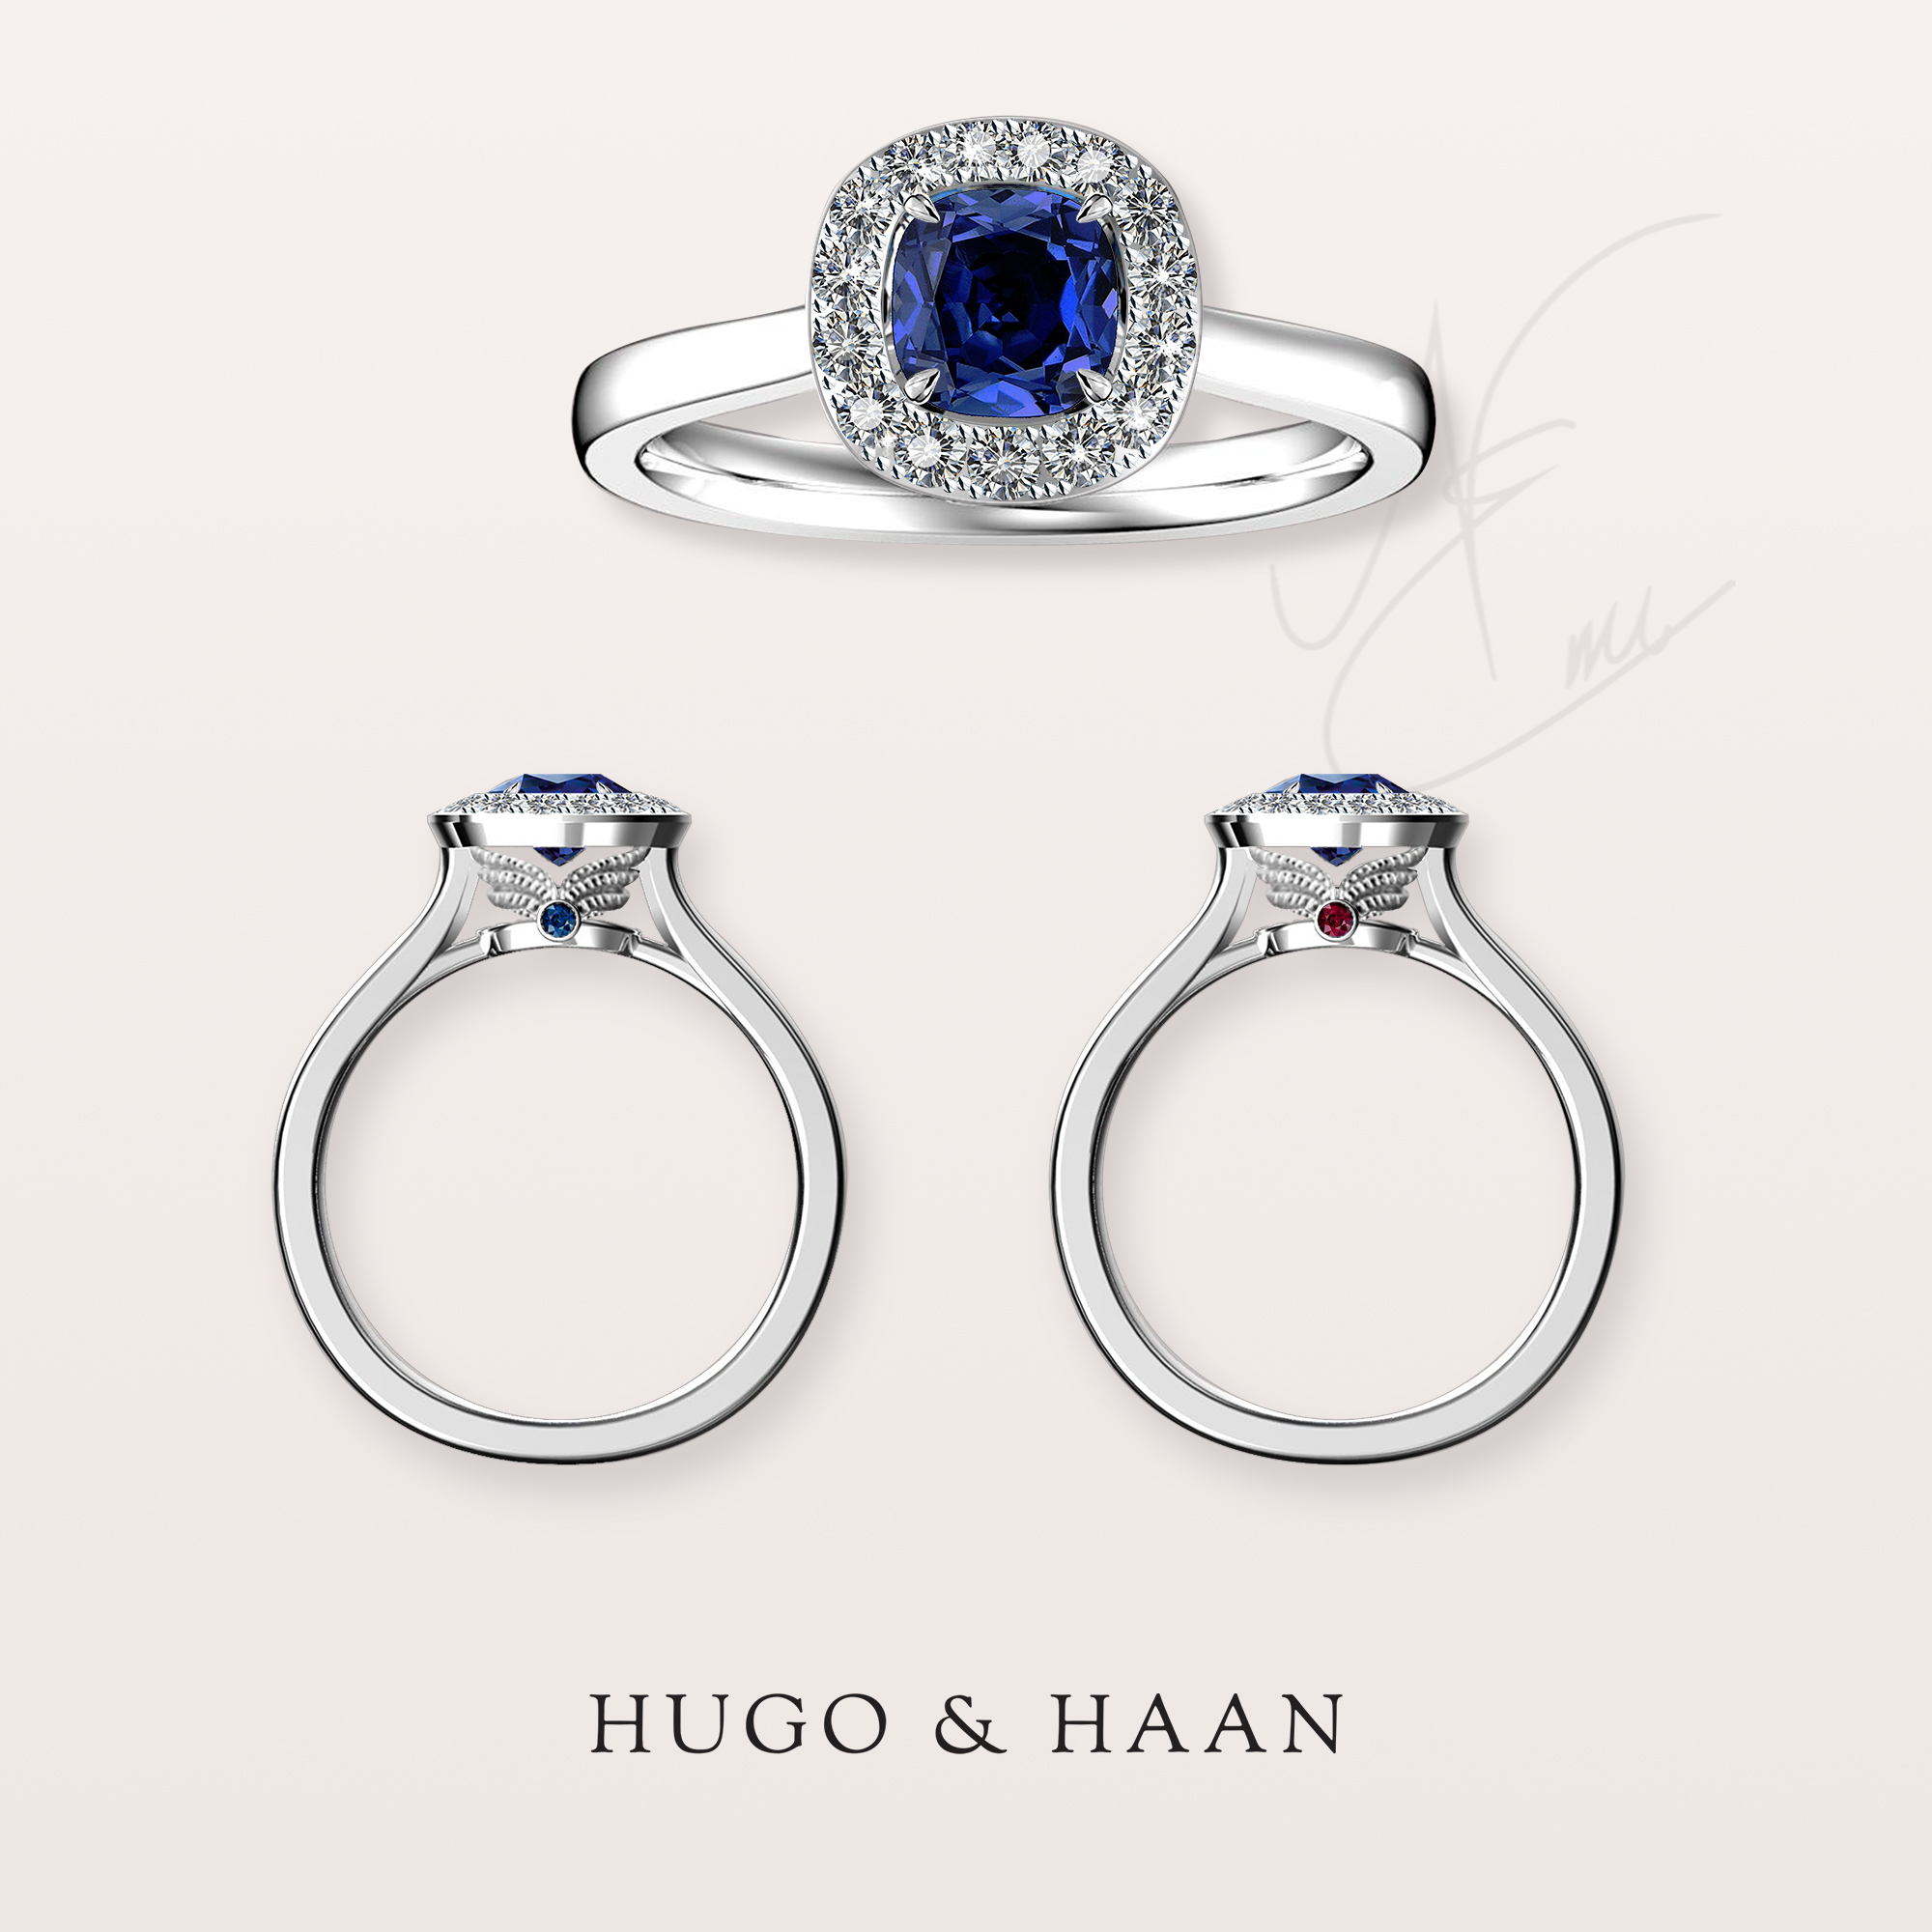 An engagement with colour and wings - Our client has approached us with an enquiry to create a sapphire ring that incorporates wings into the design that has special reference for the couple.